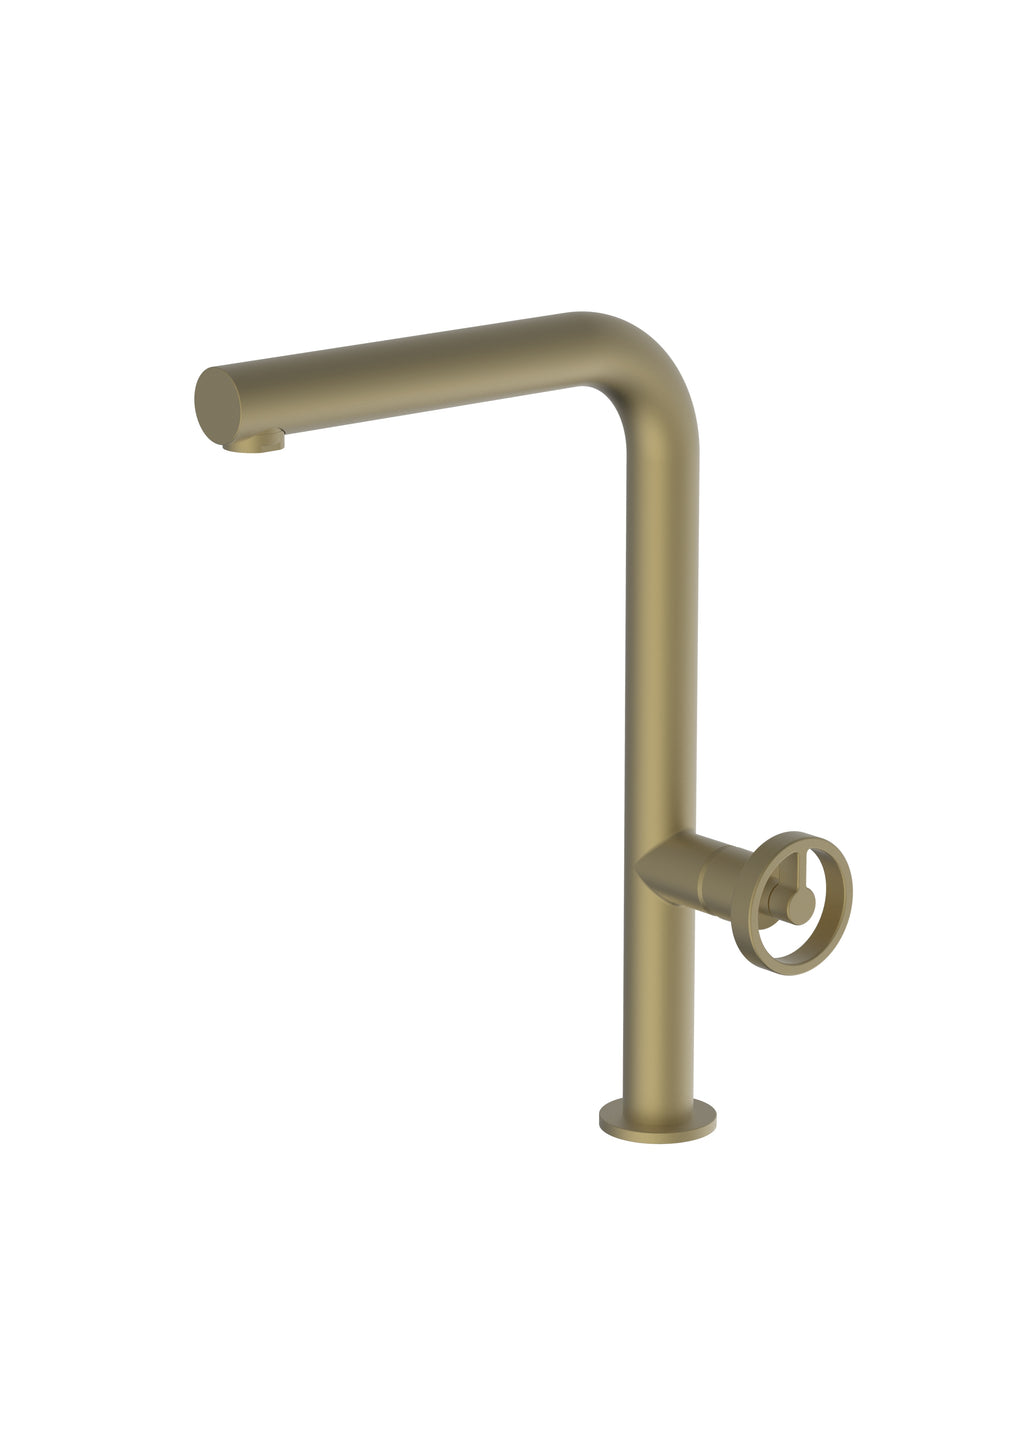 Potento Brass/Gold, kitchen mixer tap